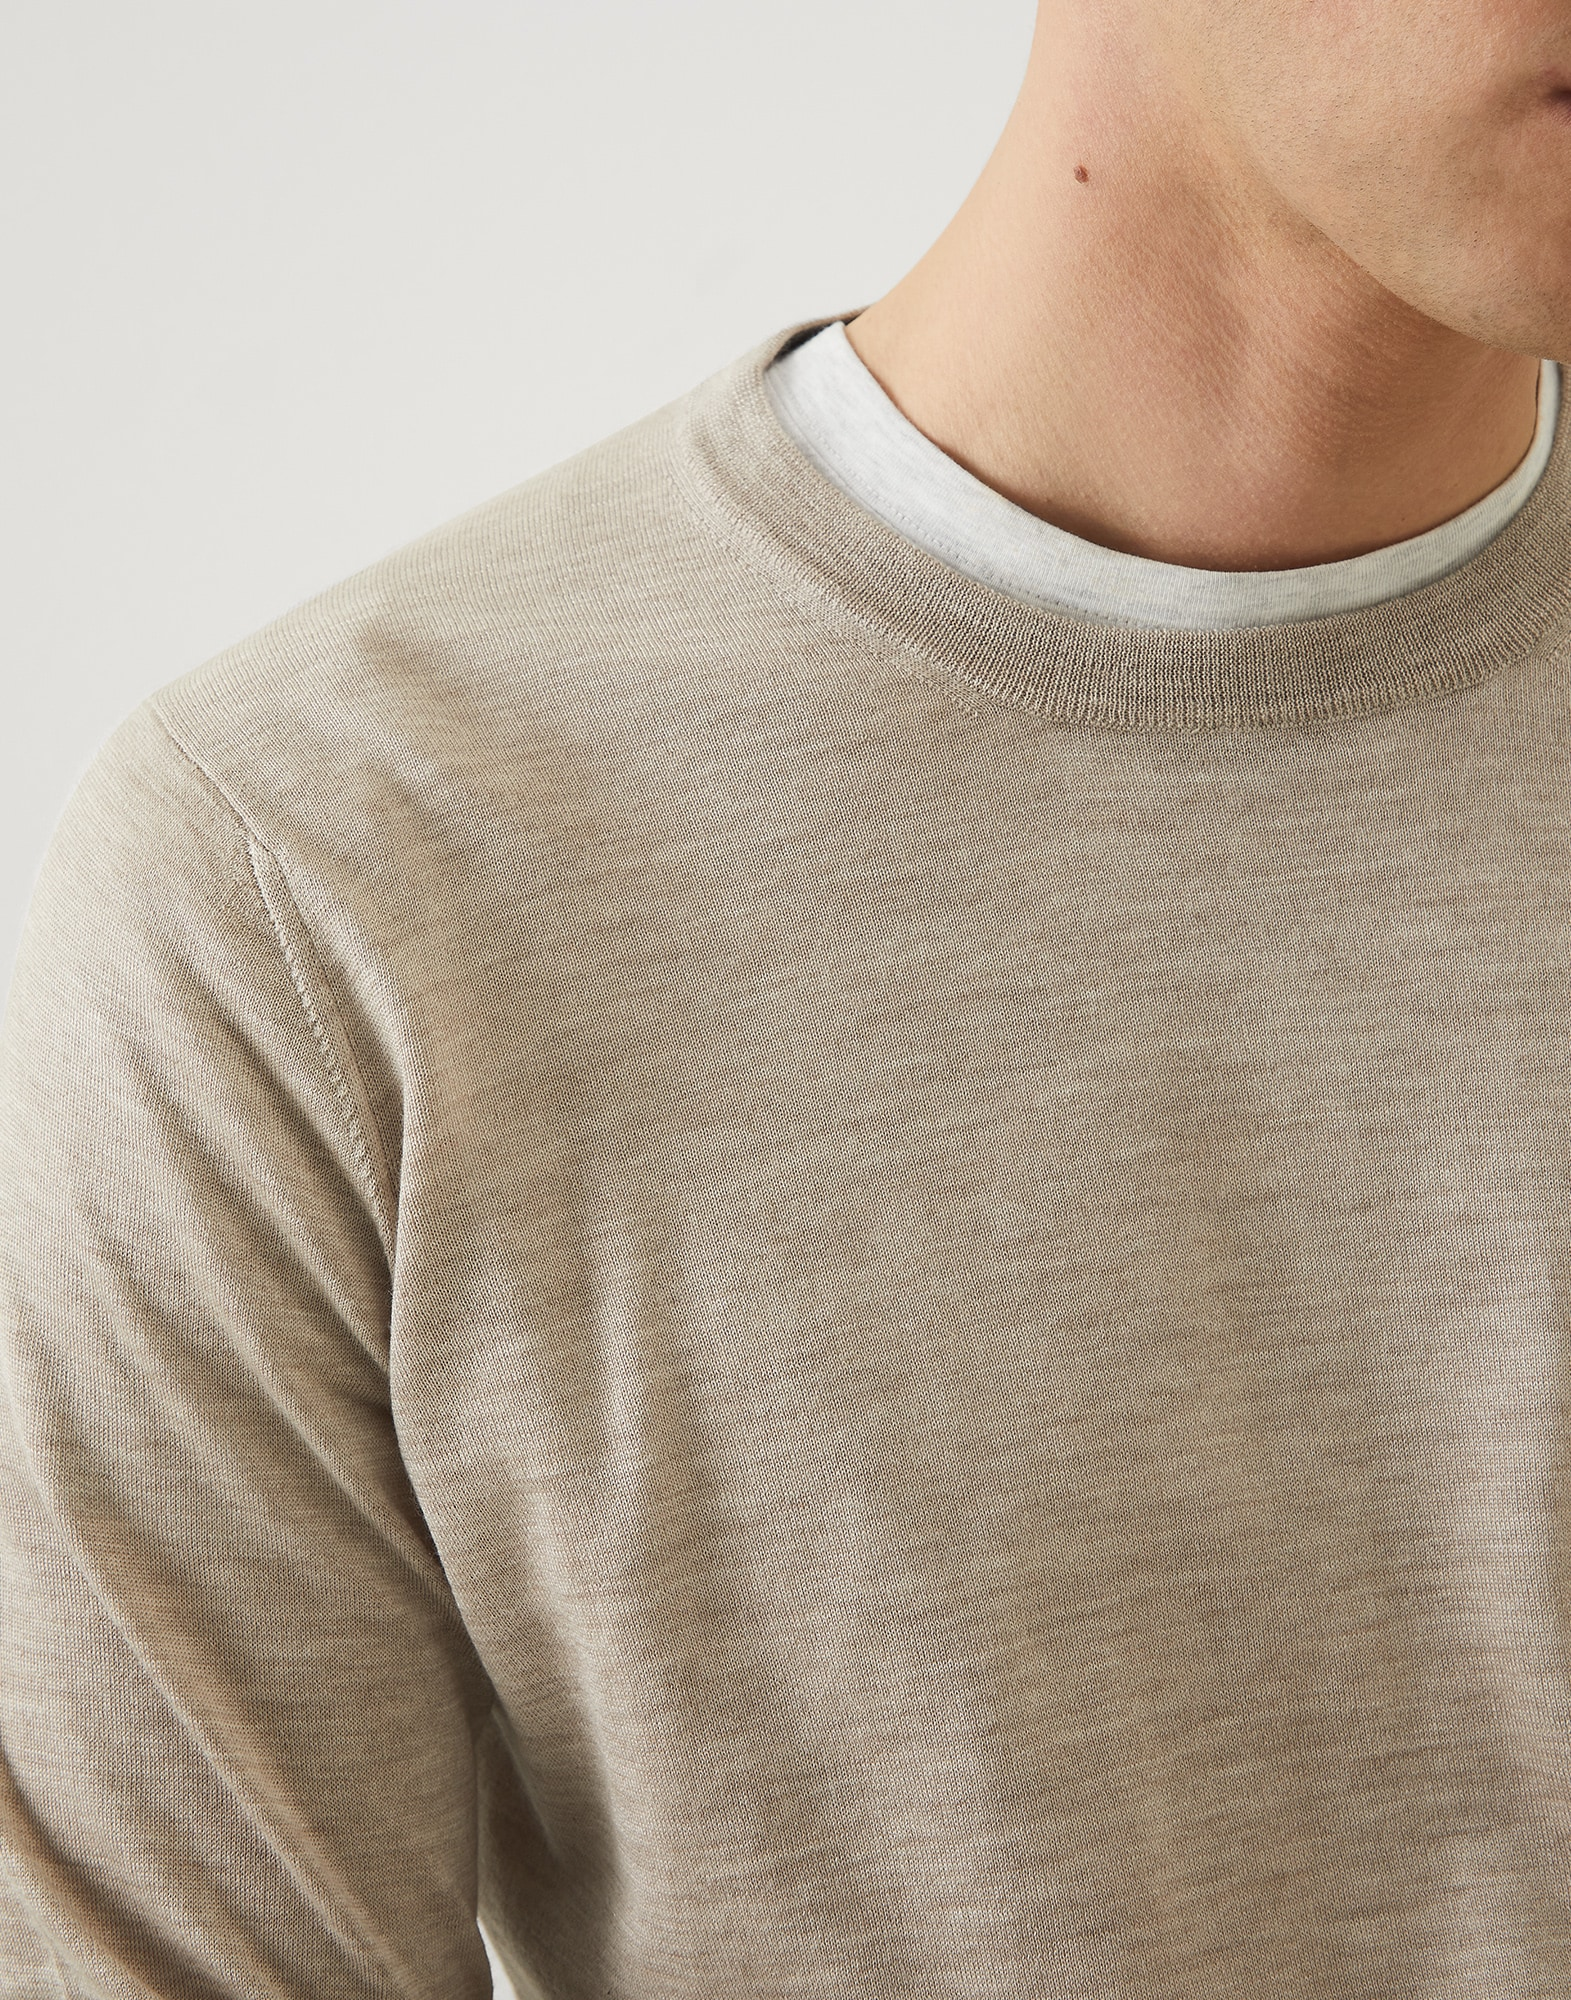 Crewneck - Detail view